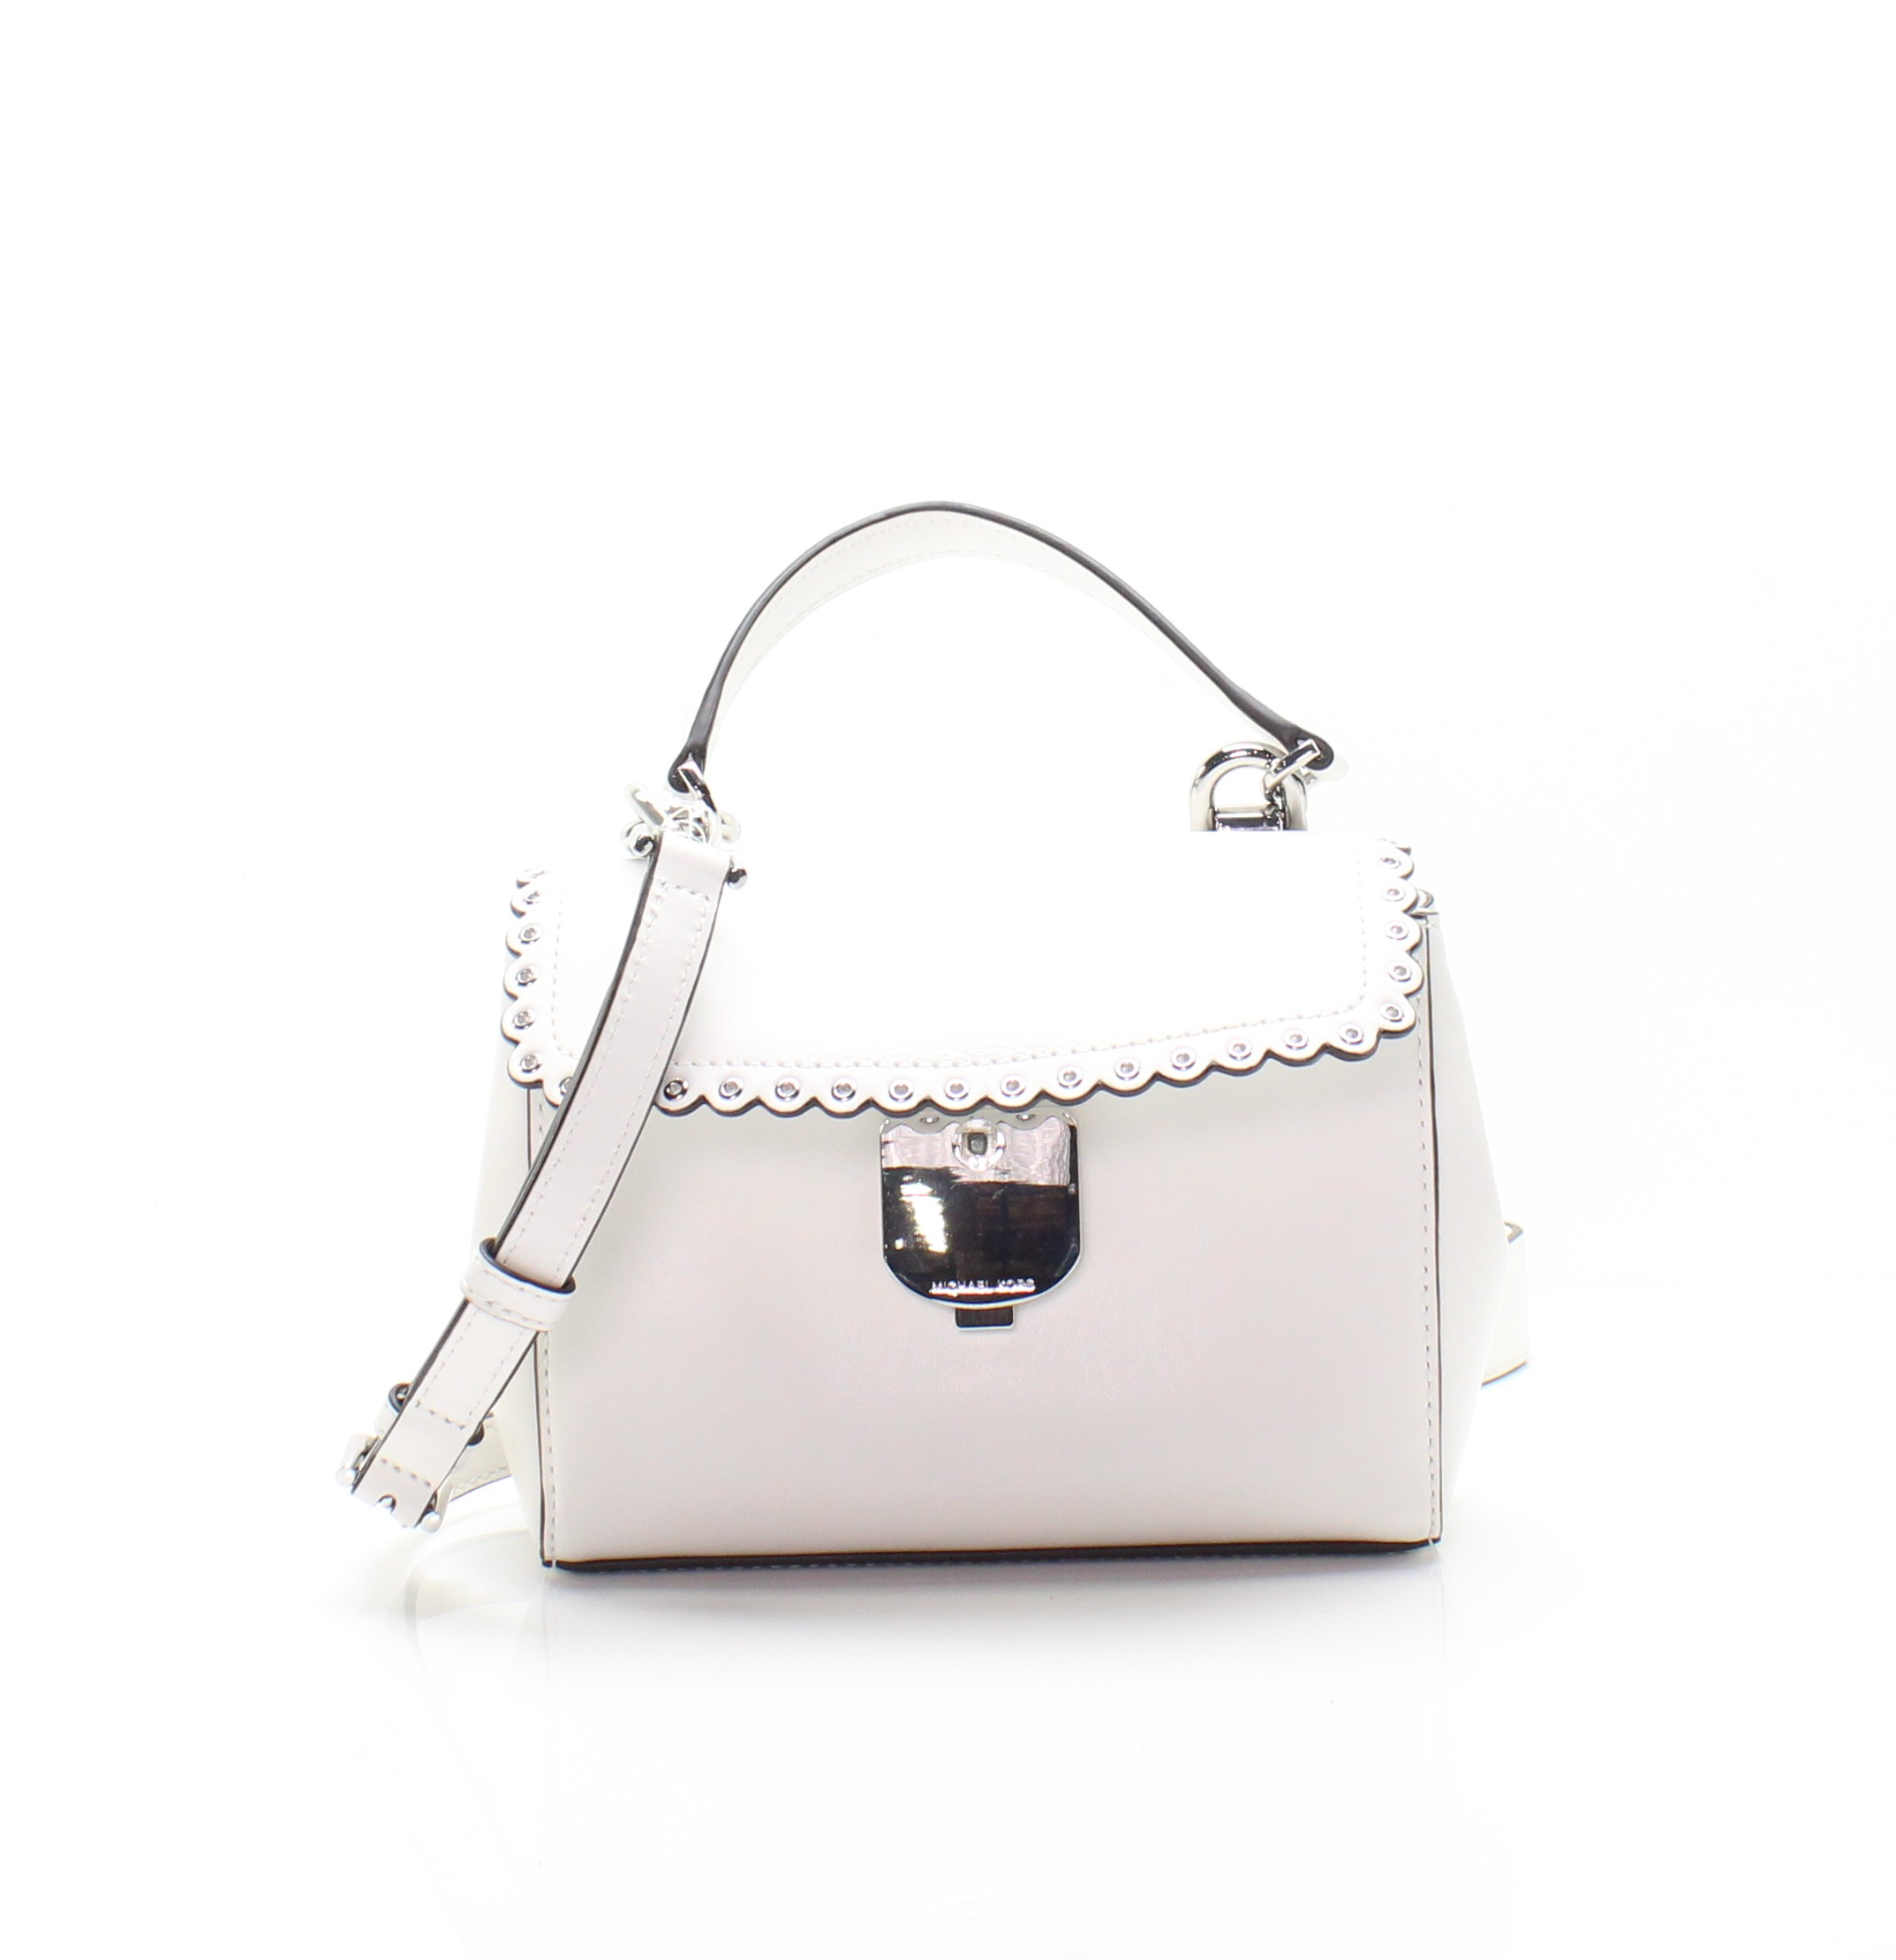 cf4623563ecf Details about Michael Kors NEW White Scalloped Leather Ava Extra Small  Crossbody Bag  228  049